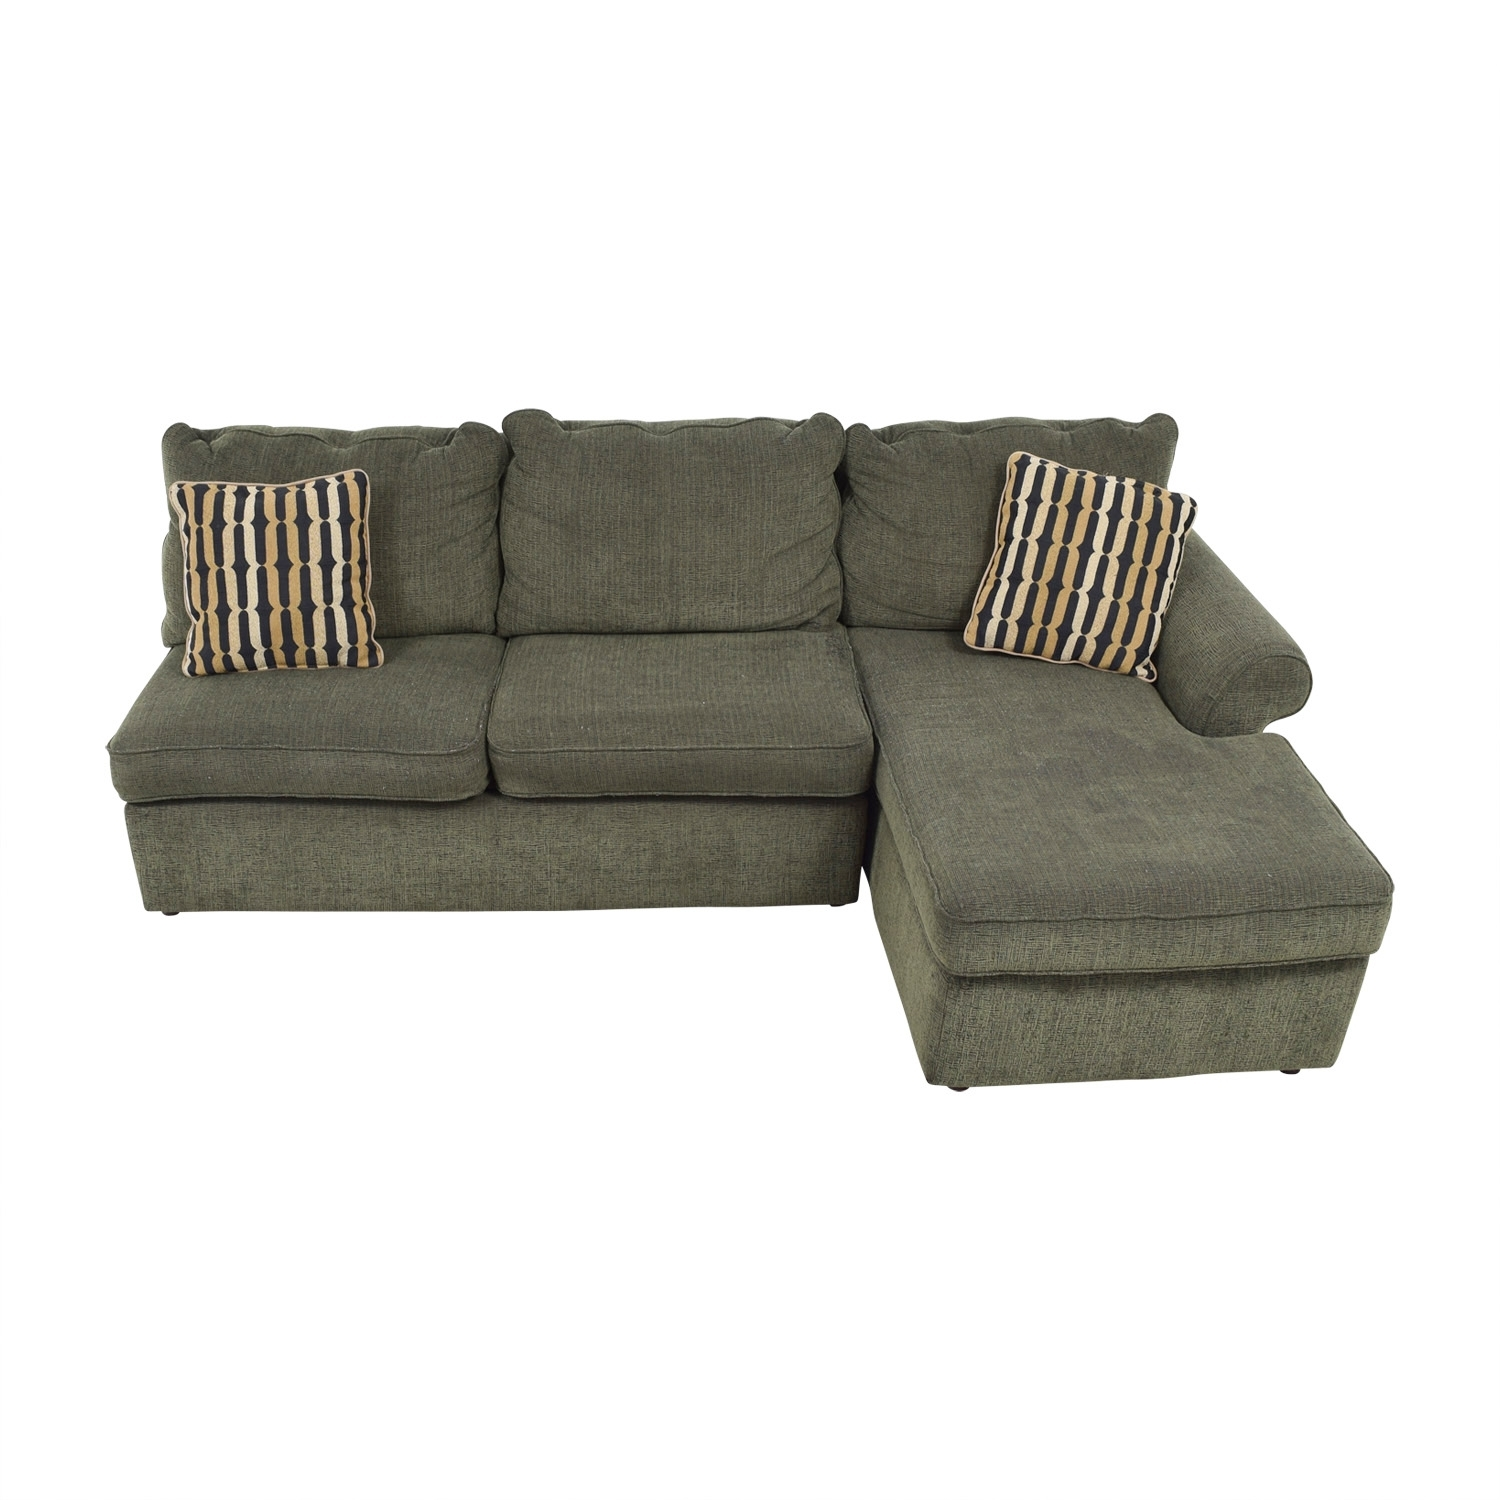 67% Off   Ikea Ikea Pink Kivik Chaise Sectional / Sofas With Used Sectional Sofas (Photo 10 of 10)